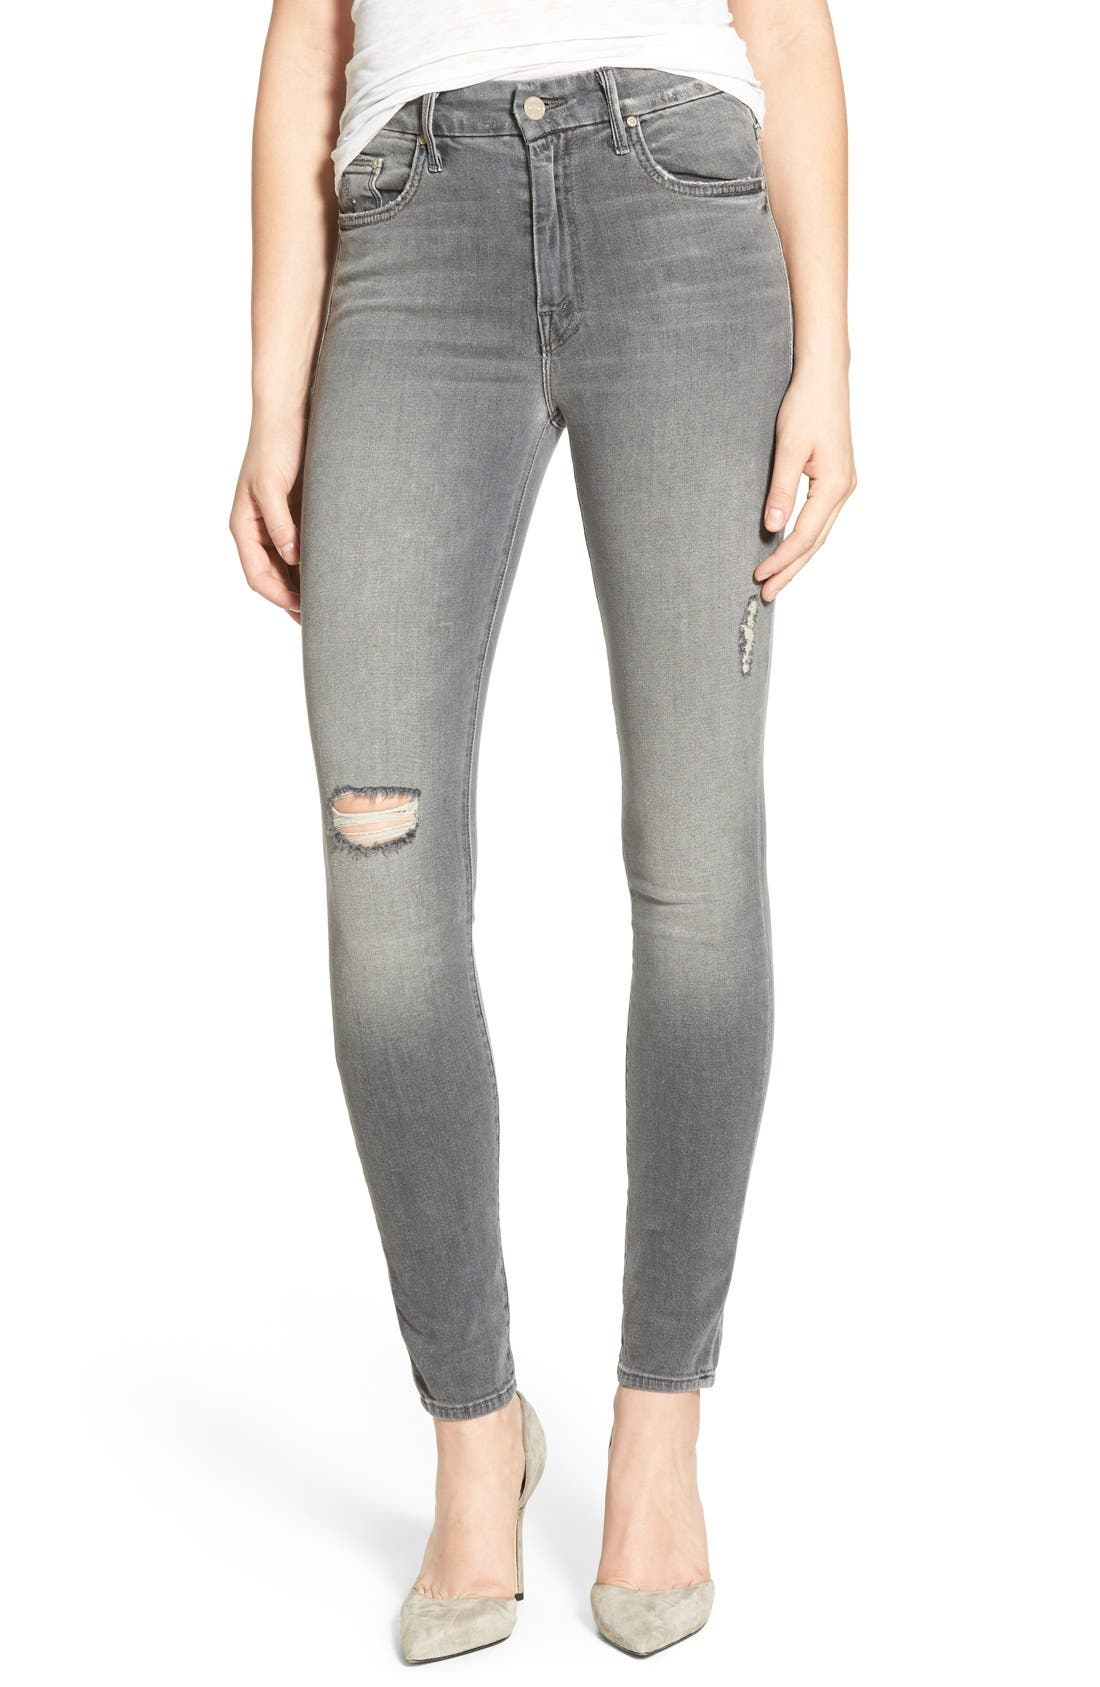 Alternate Image 1 Selected - MOTHER 'The Looker' High Rise Skinny Jeans (To the Moon and Back Again)